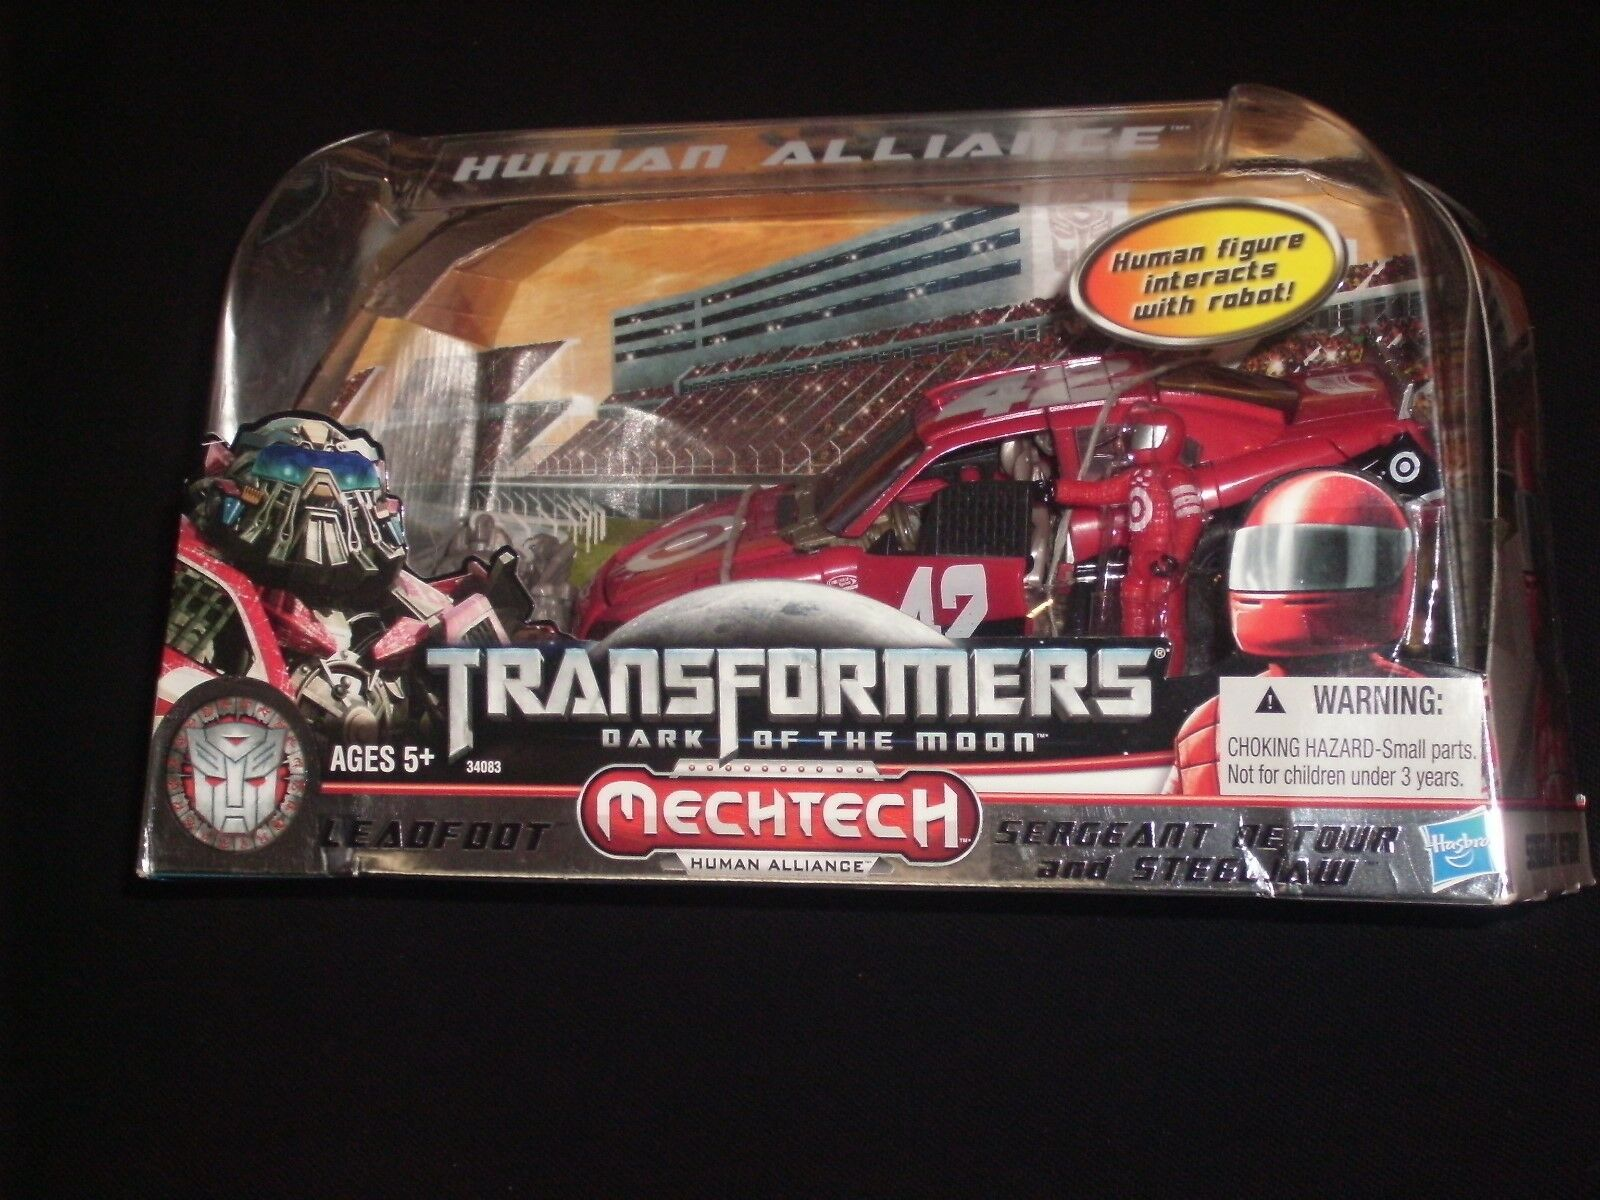 Transformers Human Alliance Box Sets Action Figures  Select Your Figure(s)